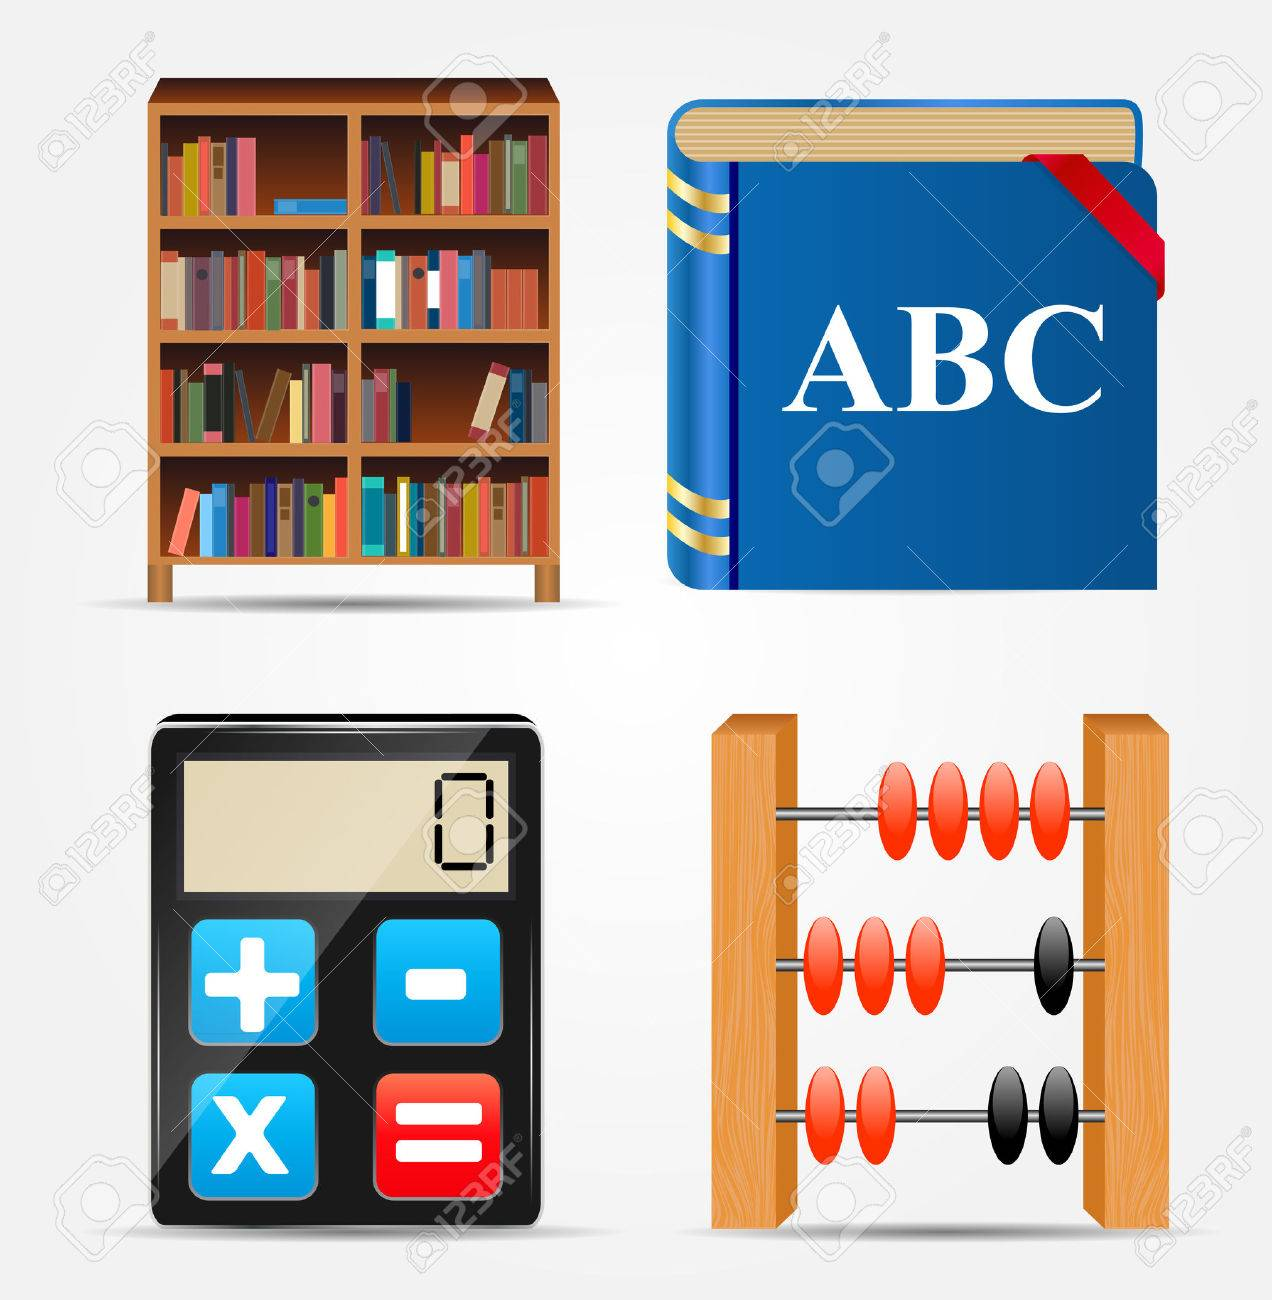 Libreria Abacus Bookcase Notepad Calculator Abacus Icon Vector Illustration